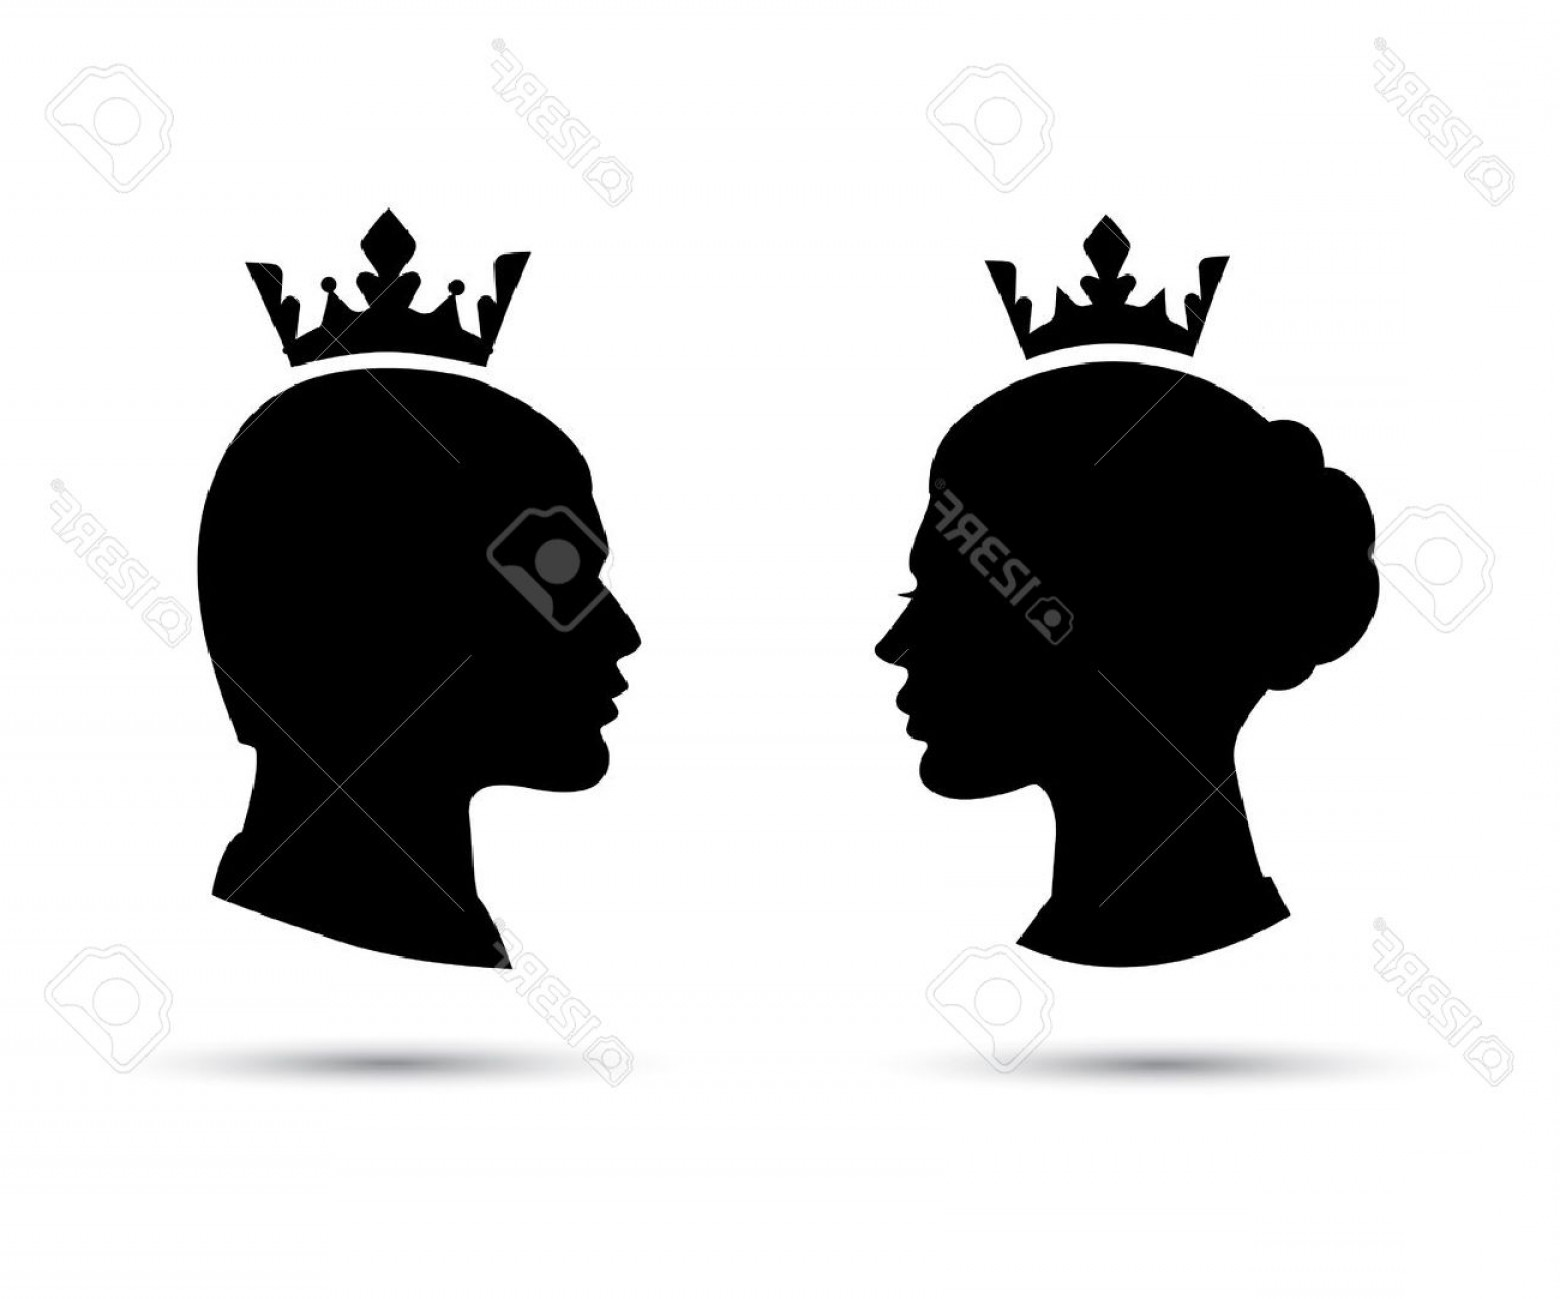 1560x1299 Photostock Vector King And Queen Heads King And Queen Face Black